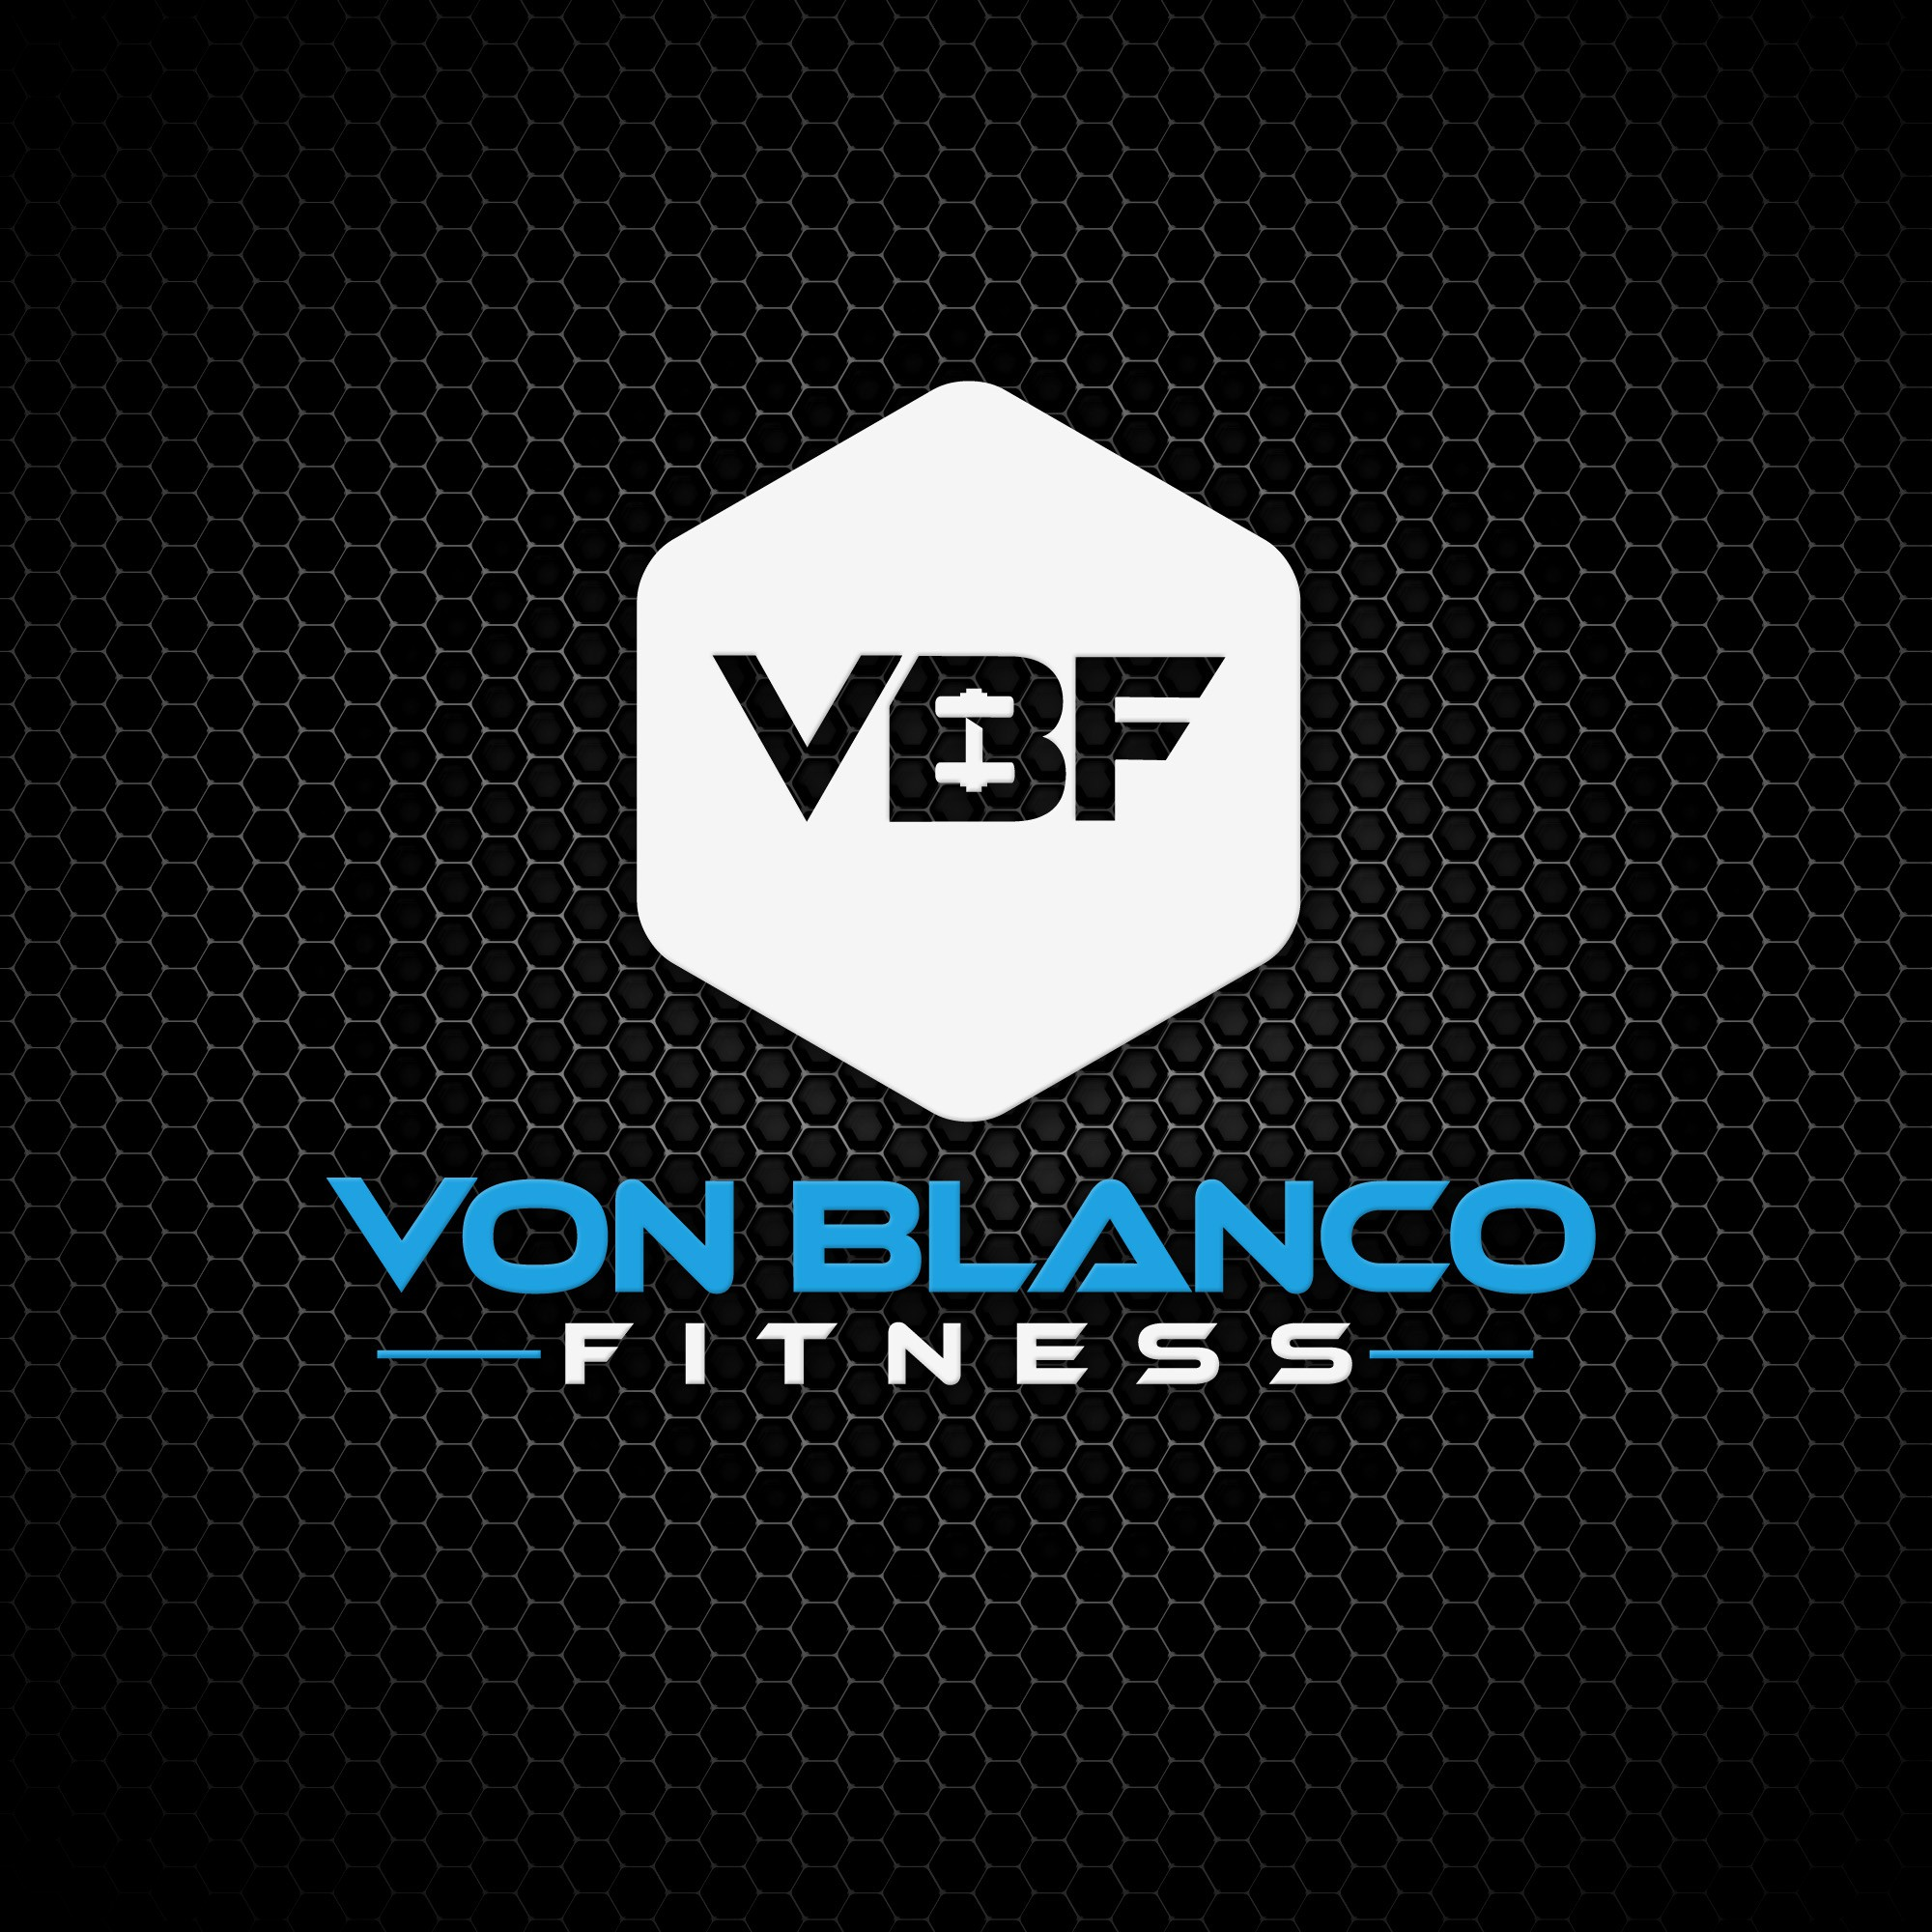 Create a simple, modern, clean logo for fitness/lifestyle site.